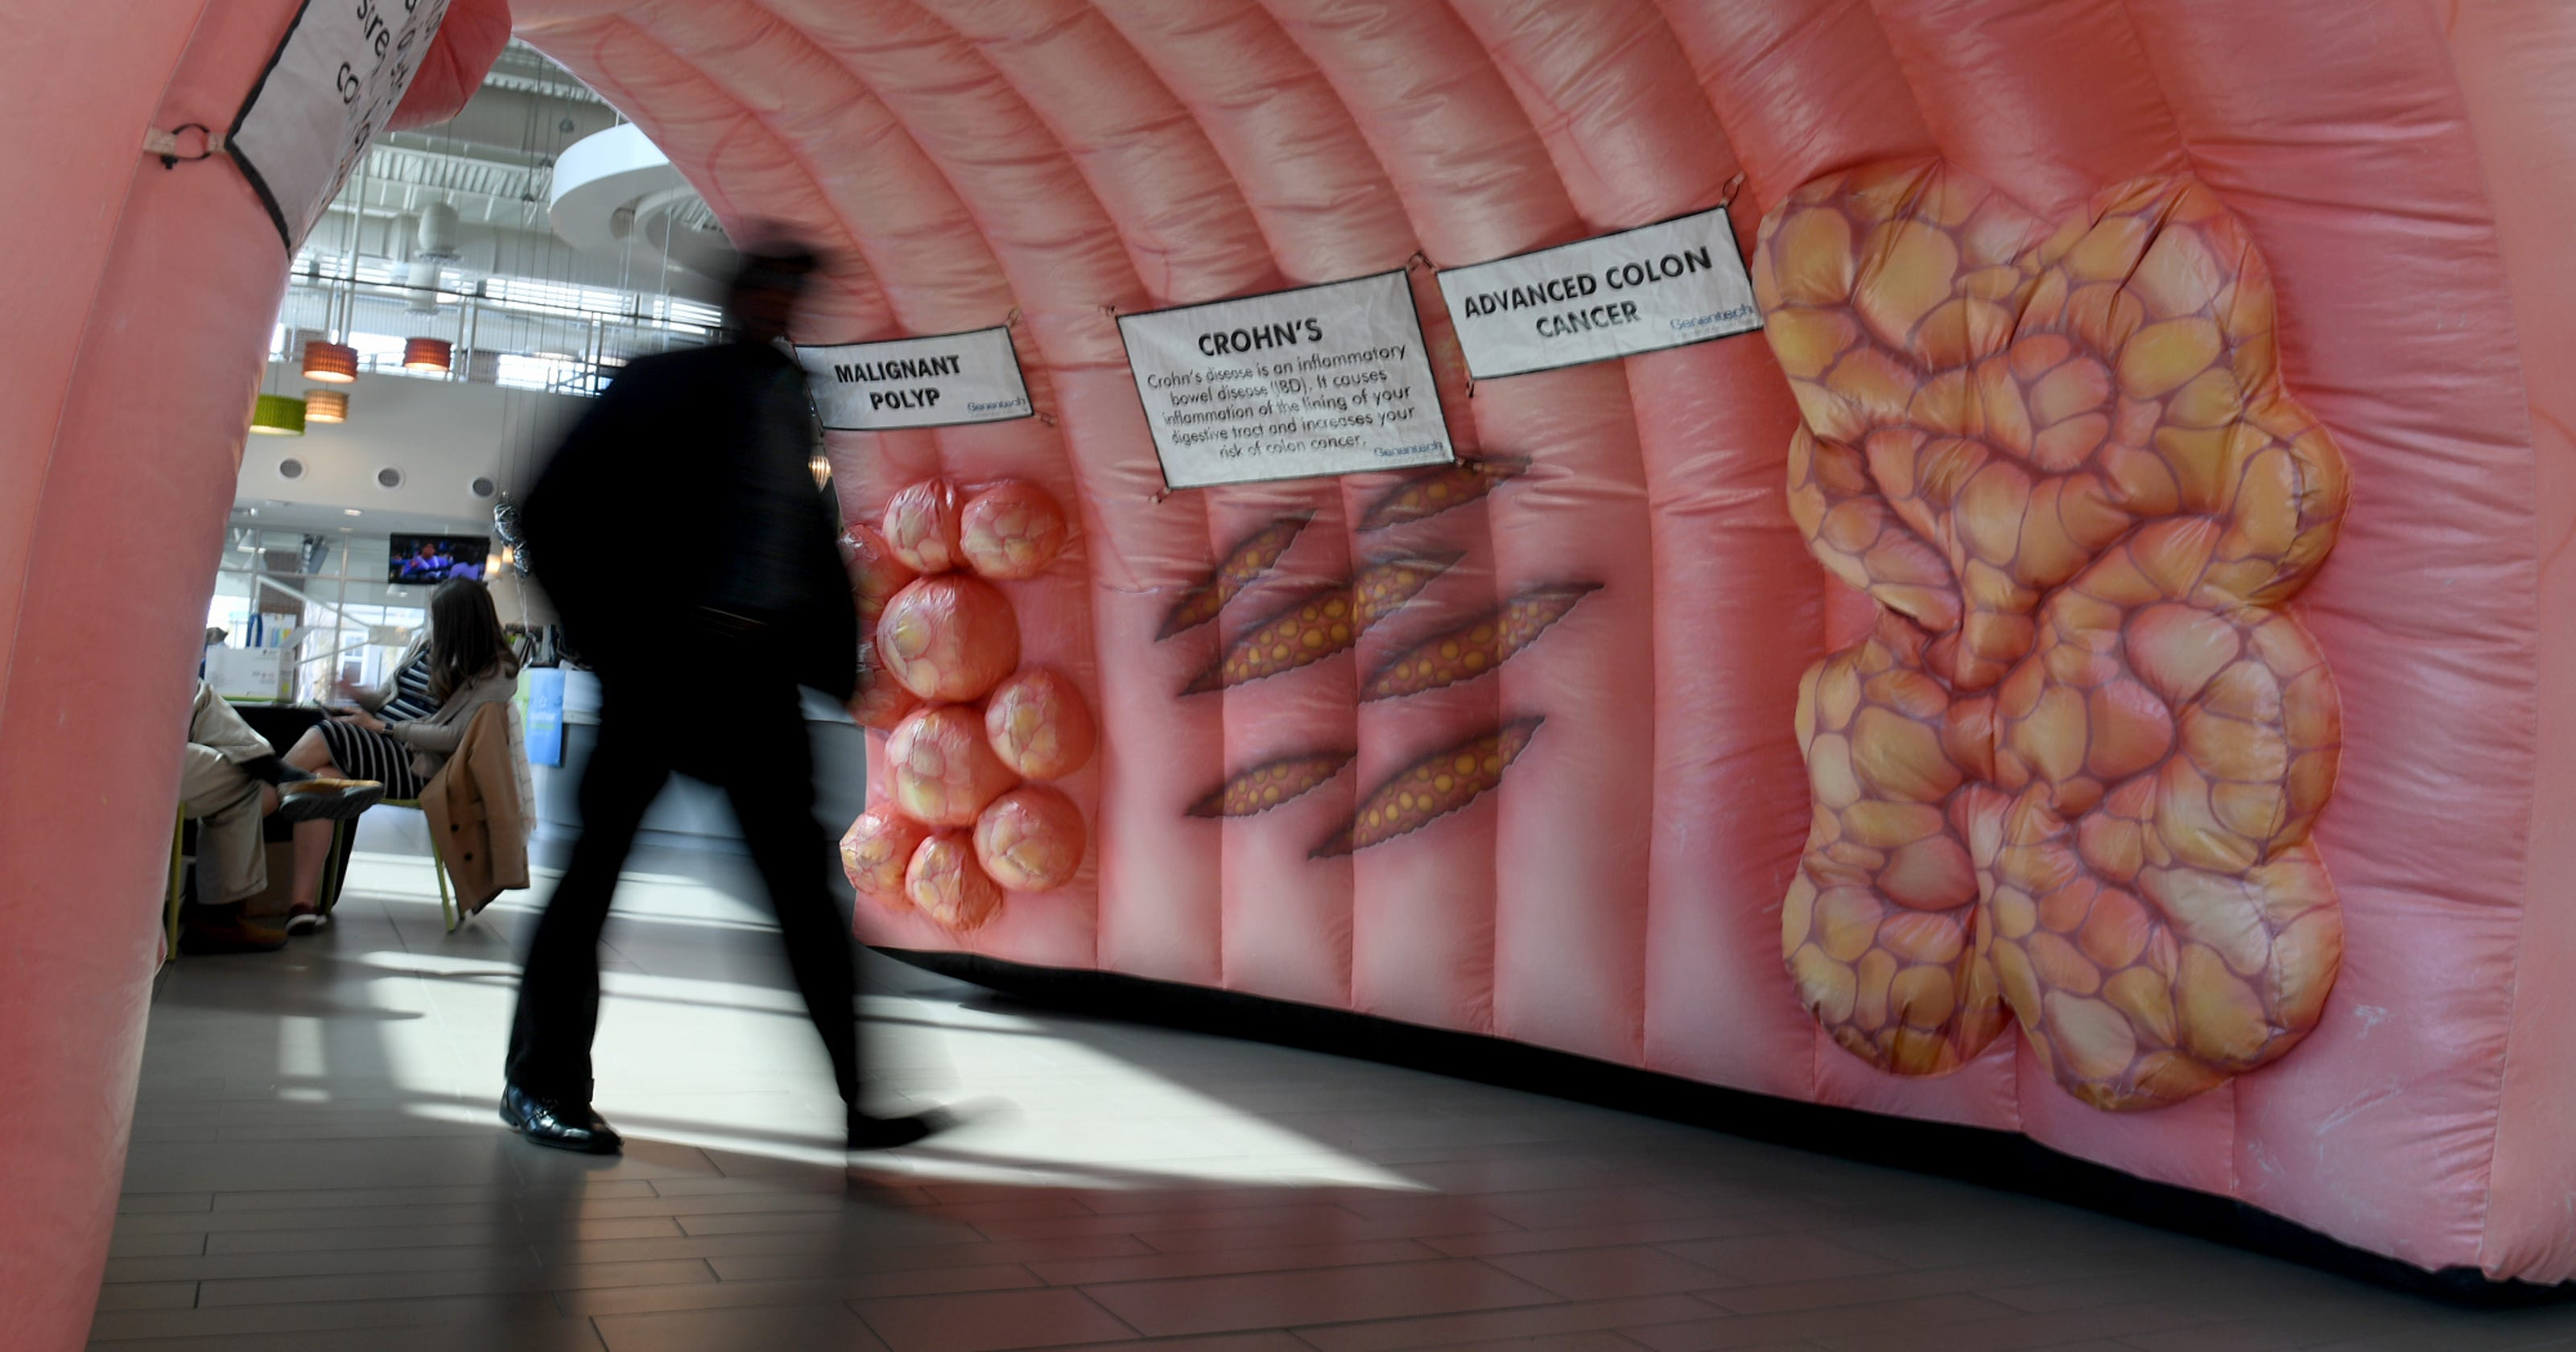 Giant Inflatable Colon Stolen And Its No Laughing Matter